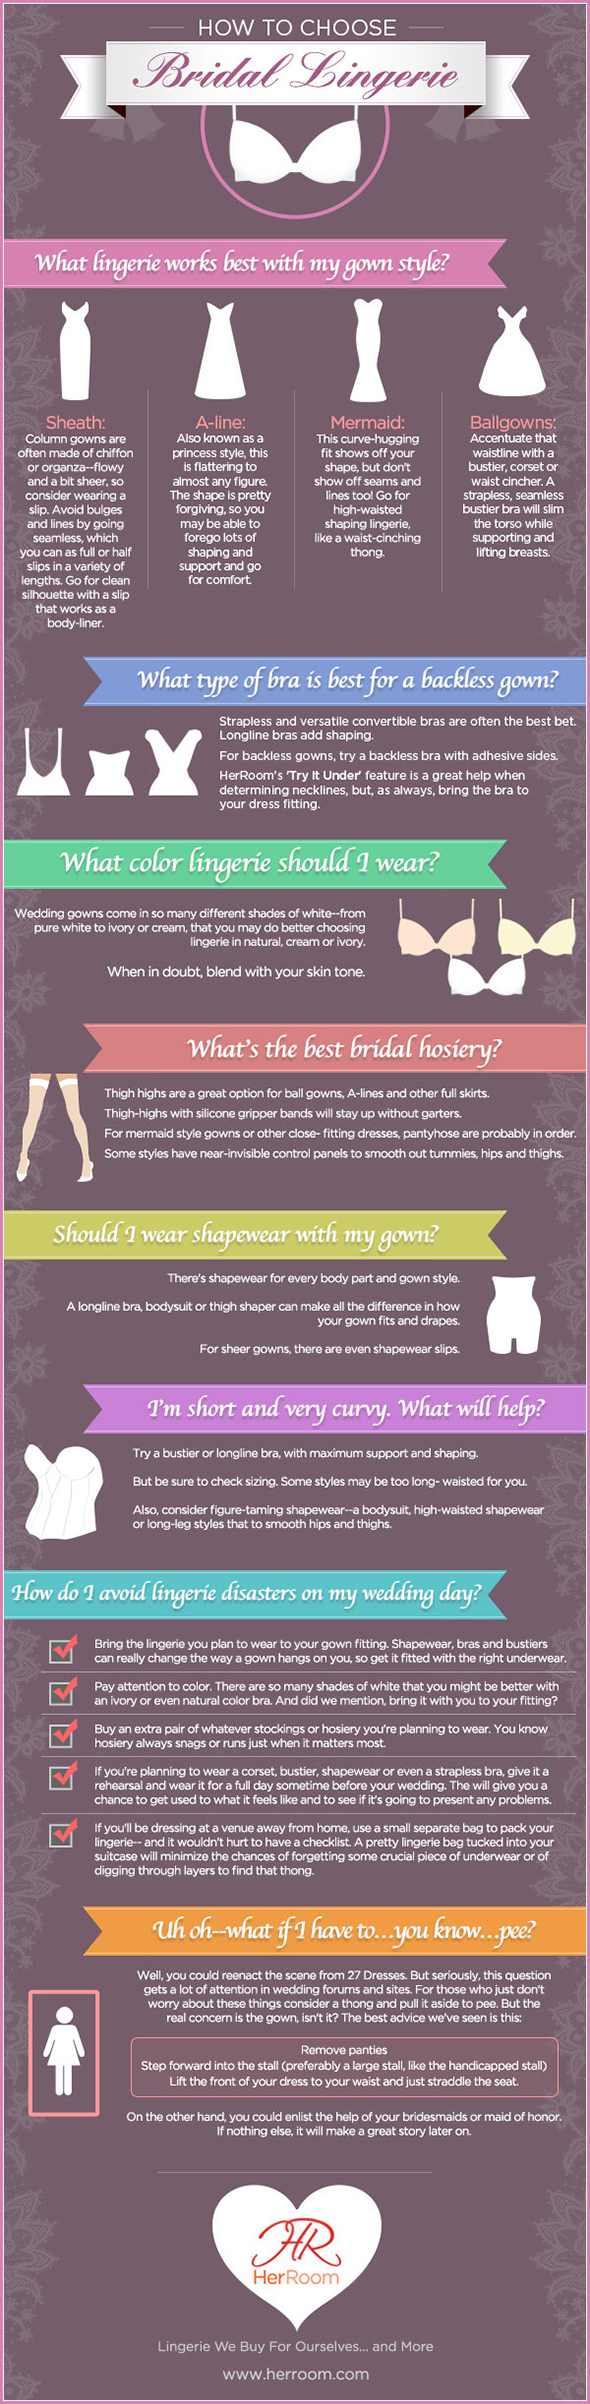 Bridal Lingerie Facts